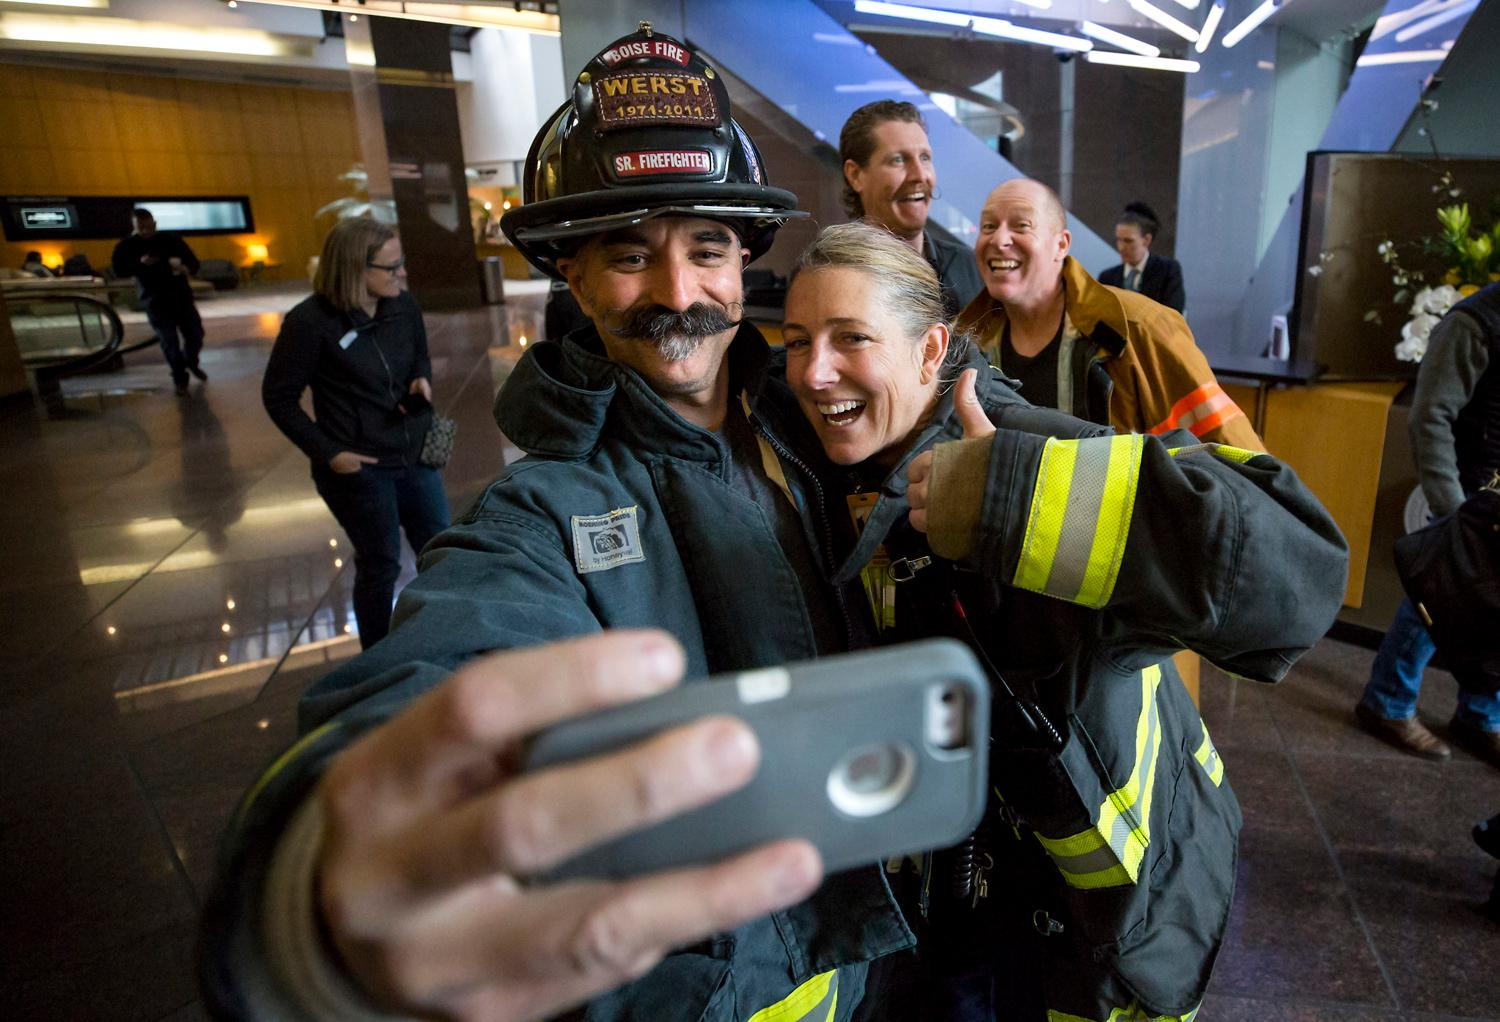 Rich Brown, lead ambassador and firefighter from Boise, Idaho, takes a selfie with a Seattle firefighter before climbing the 69 floors of the Columbia Tower to train for the Scott Firefight Stairclimb that benefits the Leukemia & Lymphoma Society. 2,000 firefighters will climb the 69 floors (1,356 stairs!) on Sunday. To donate to this cause, please visit www.firefighterstairclimb.org. (Sy Bean / Seattle Refined)